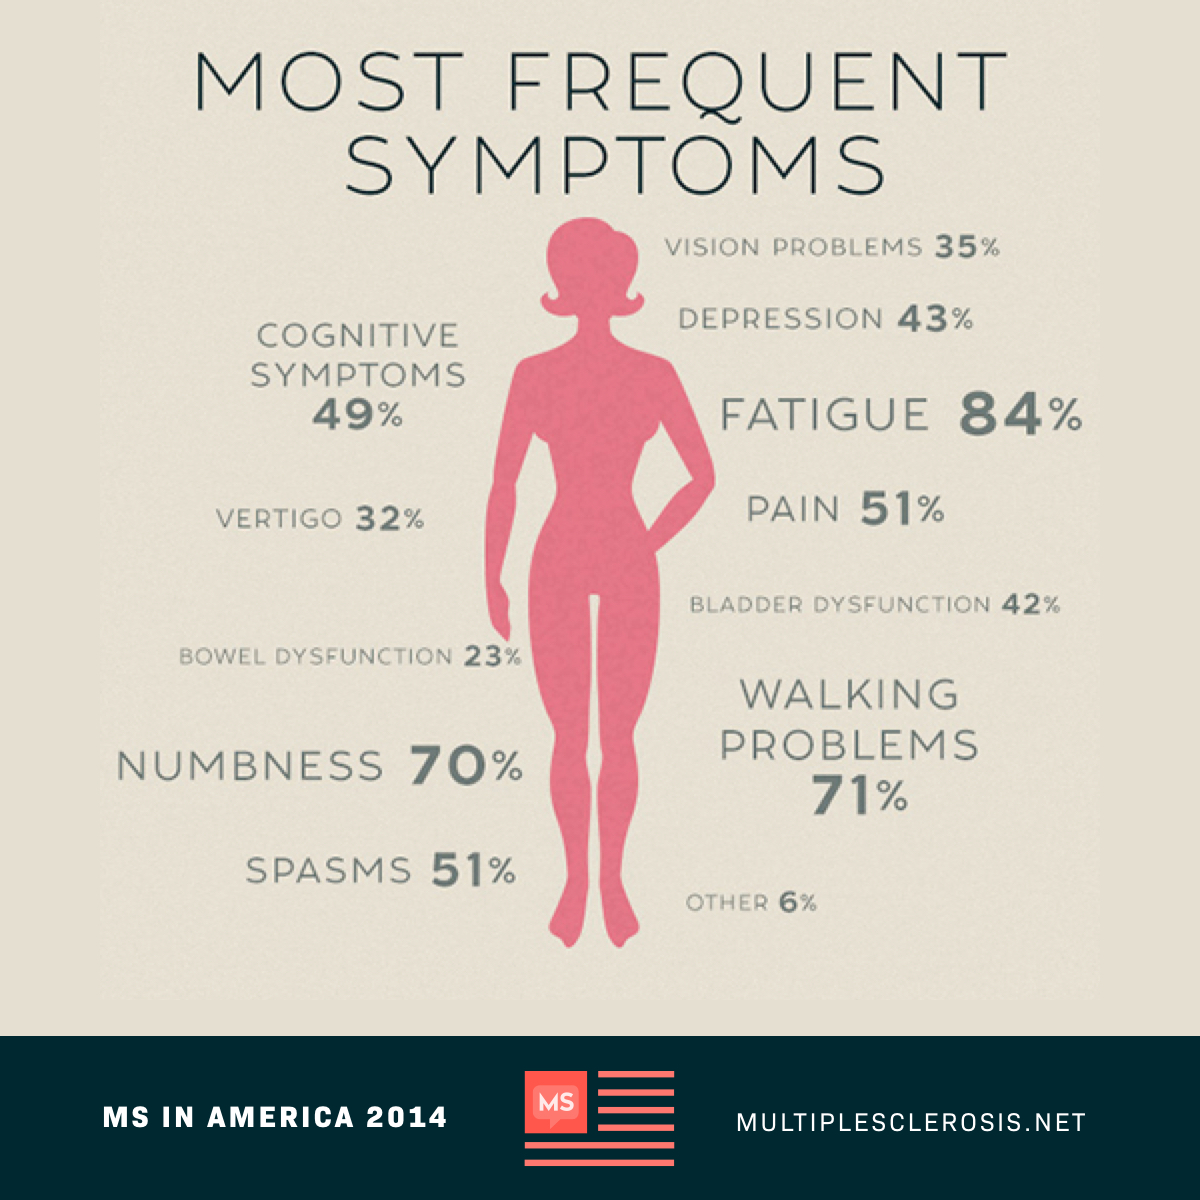 Most Frequent Symptoms